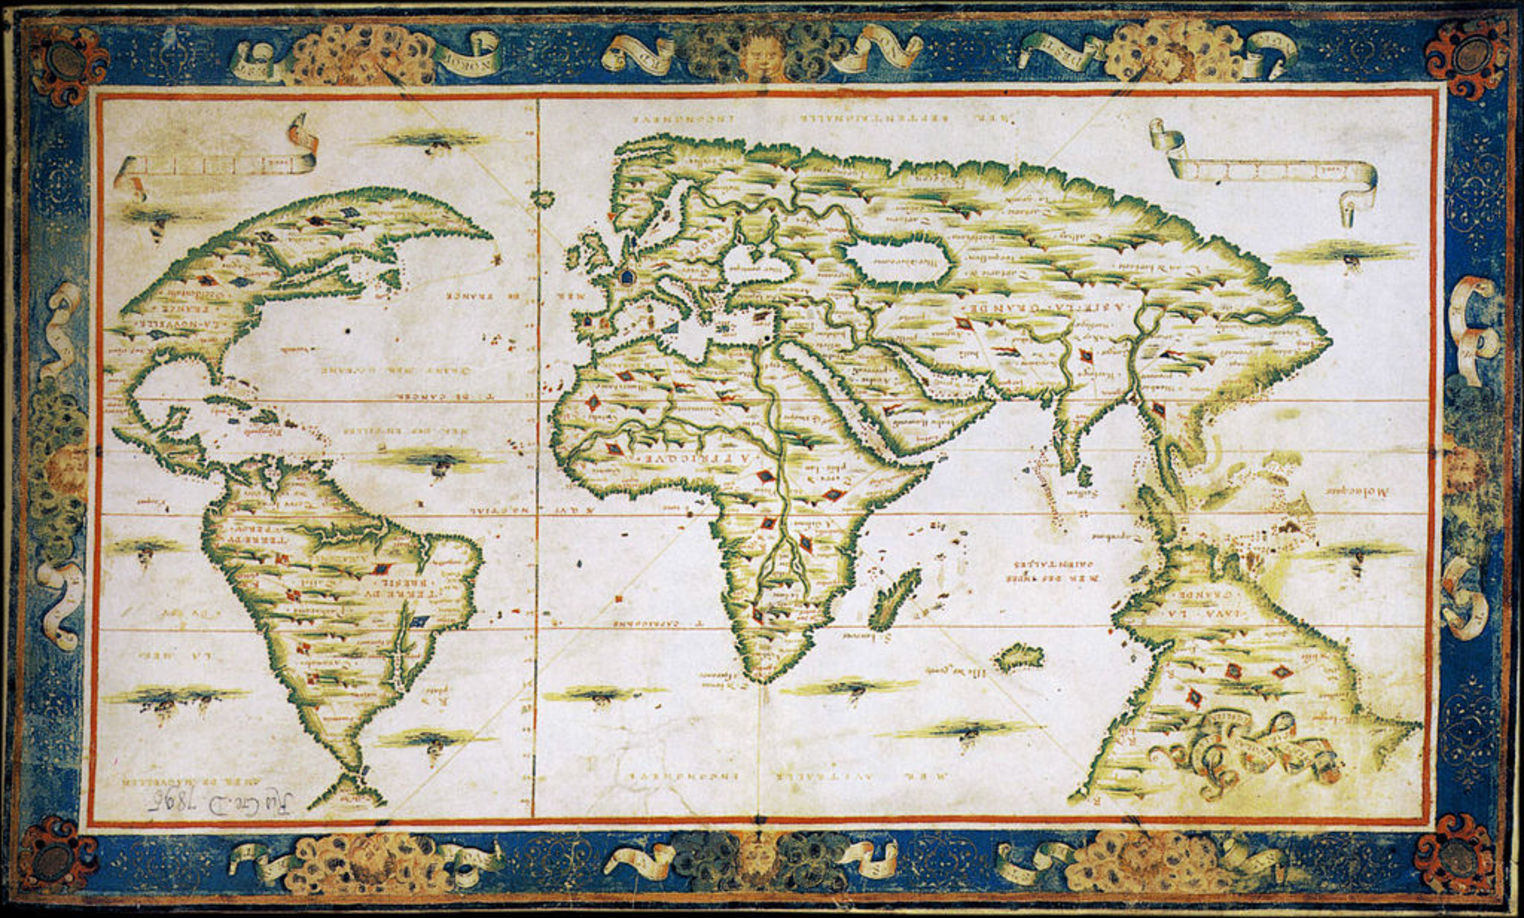 Centuries of map making from william smiths survey to satellites nicolas desliens 1566 map of the world originally depicted with south at the top credit nicolas desliens gumiabroncs Choice Image